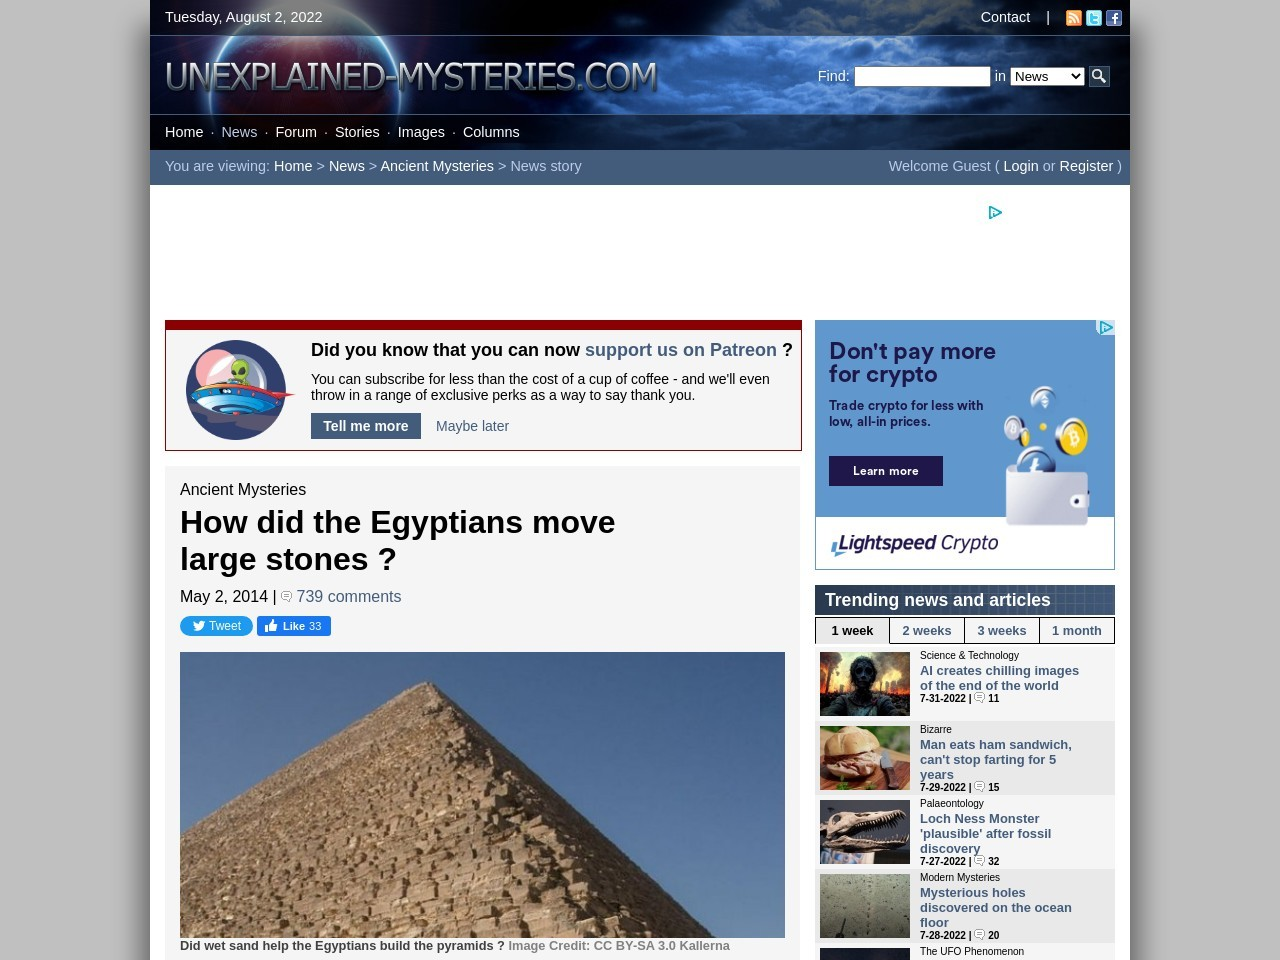 How did the Egyptians move large stones ?